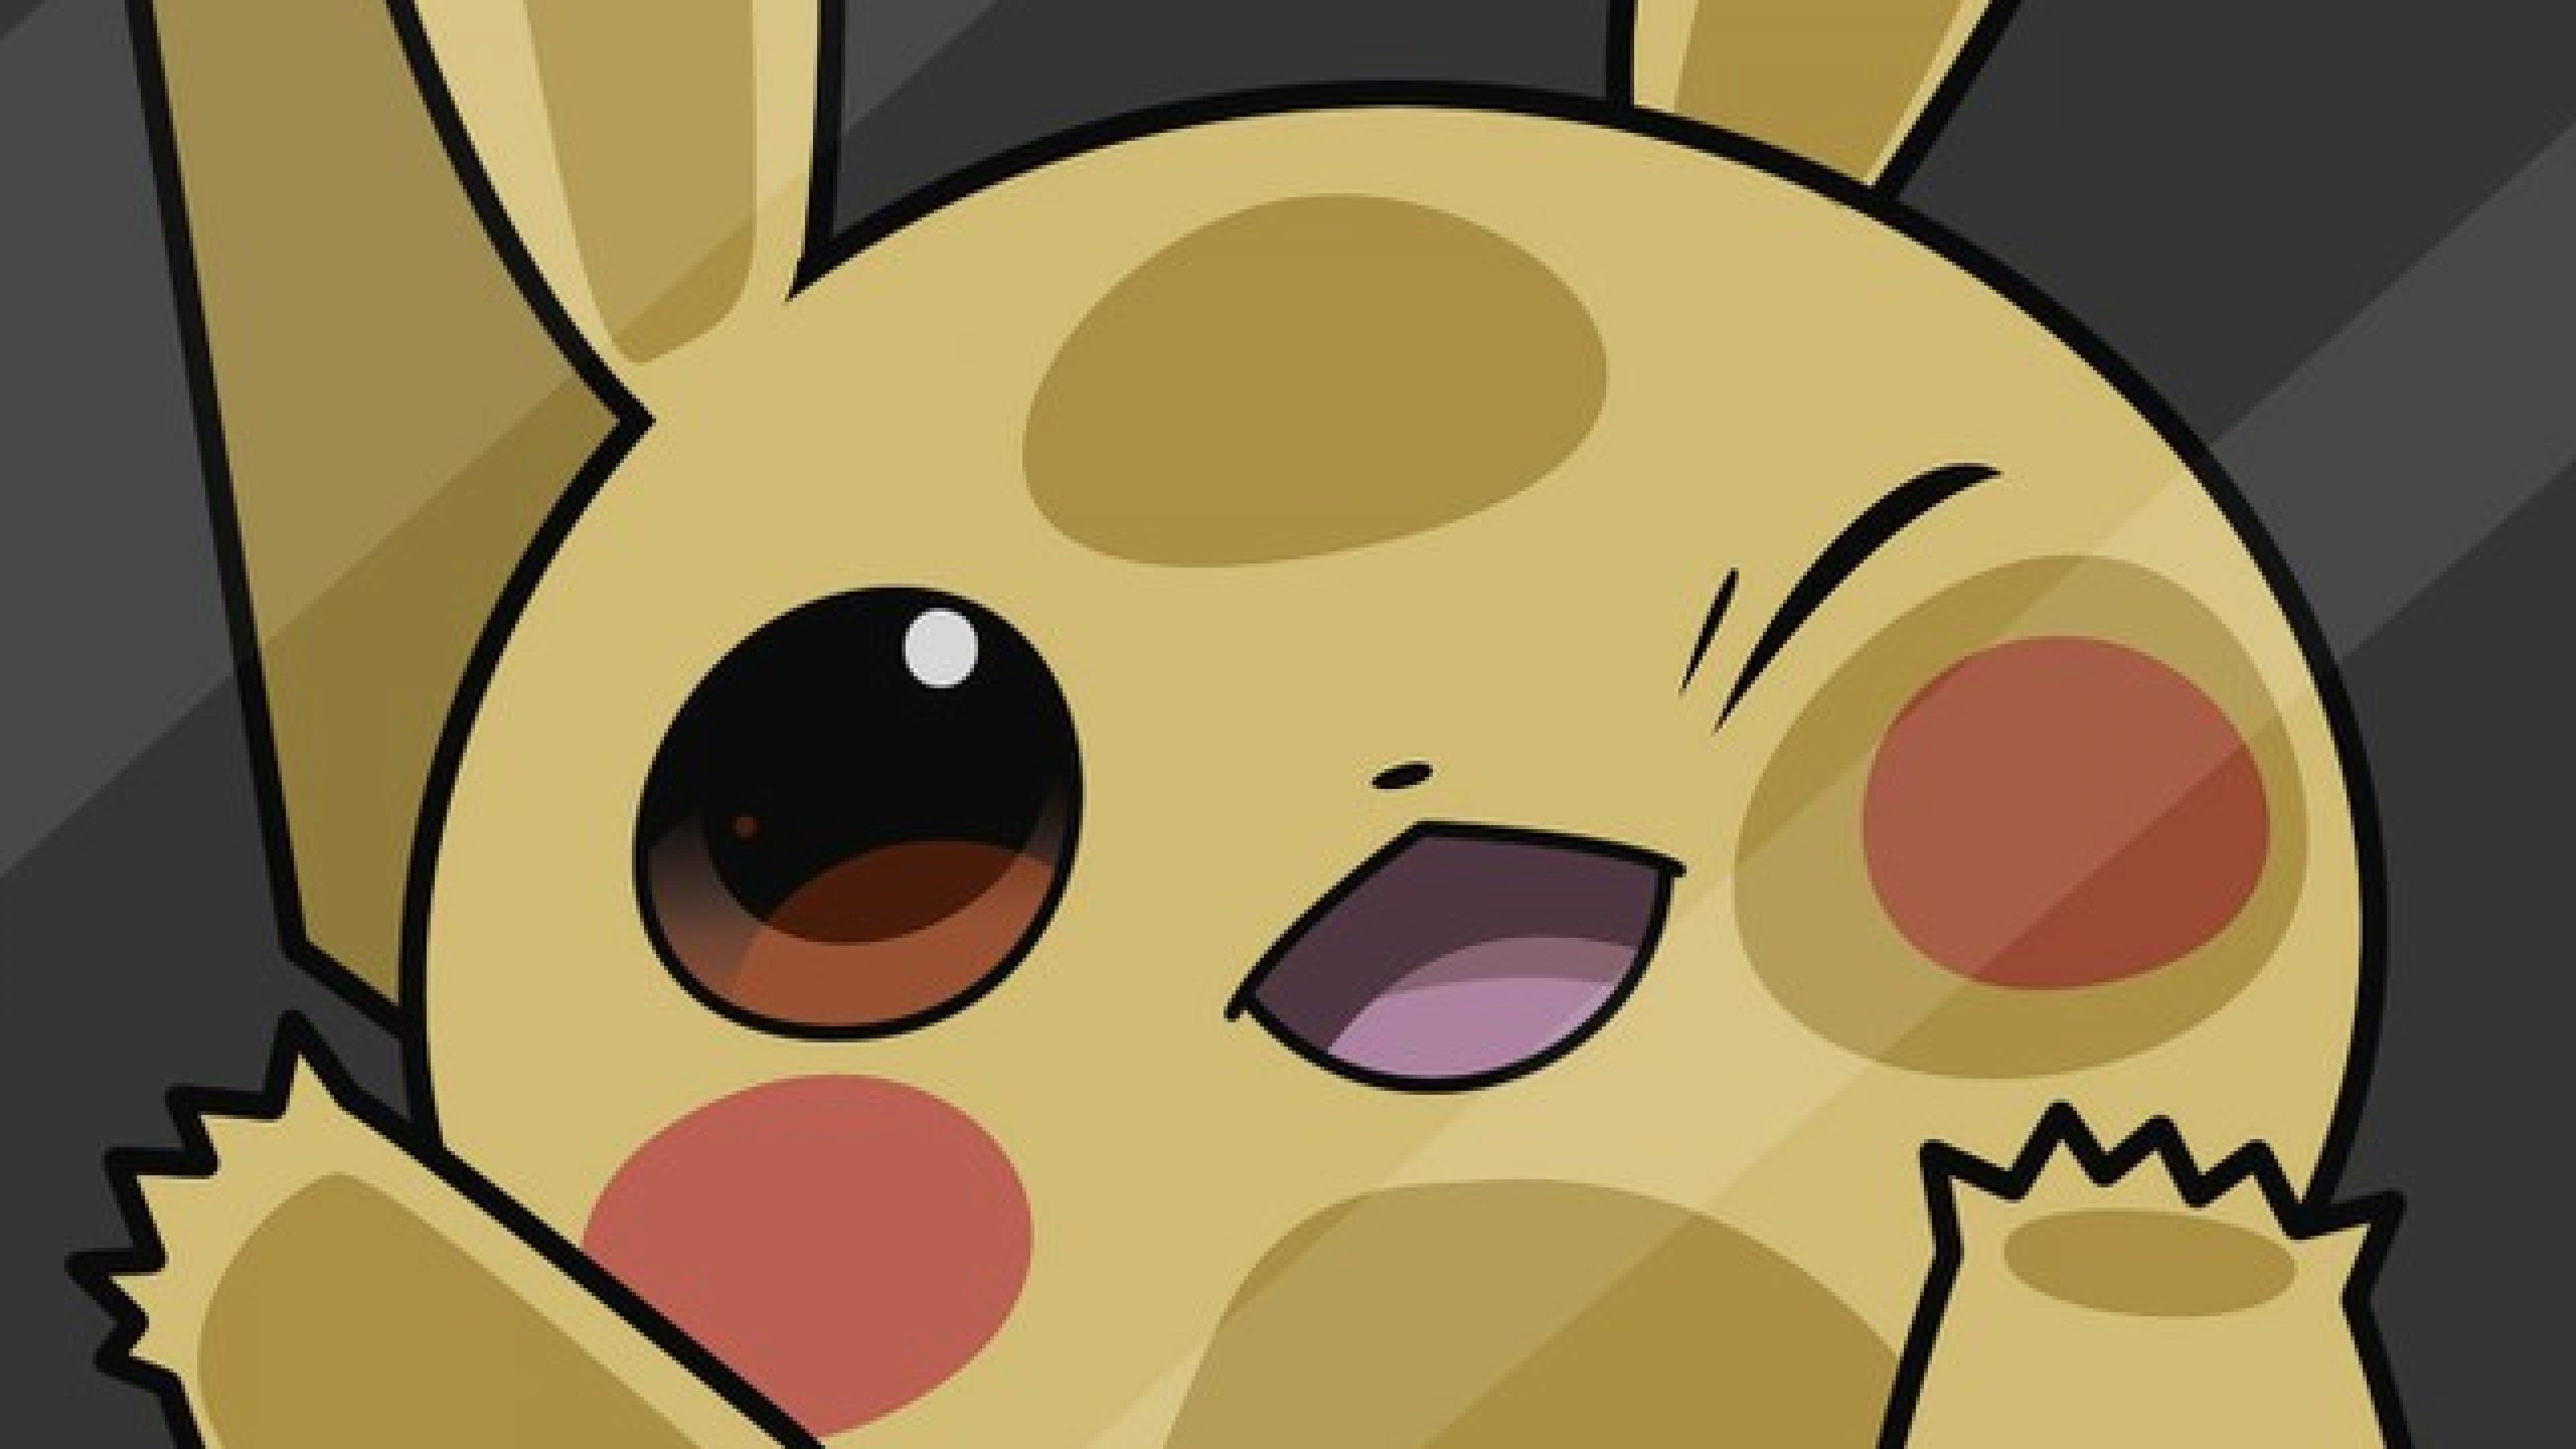 Cute Pokemon Iphone Wallpapers Cool Pikachu Wallpapers 77 Images